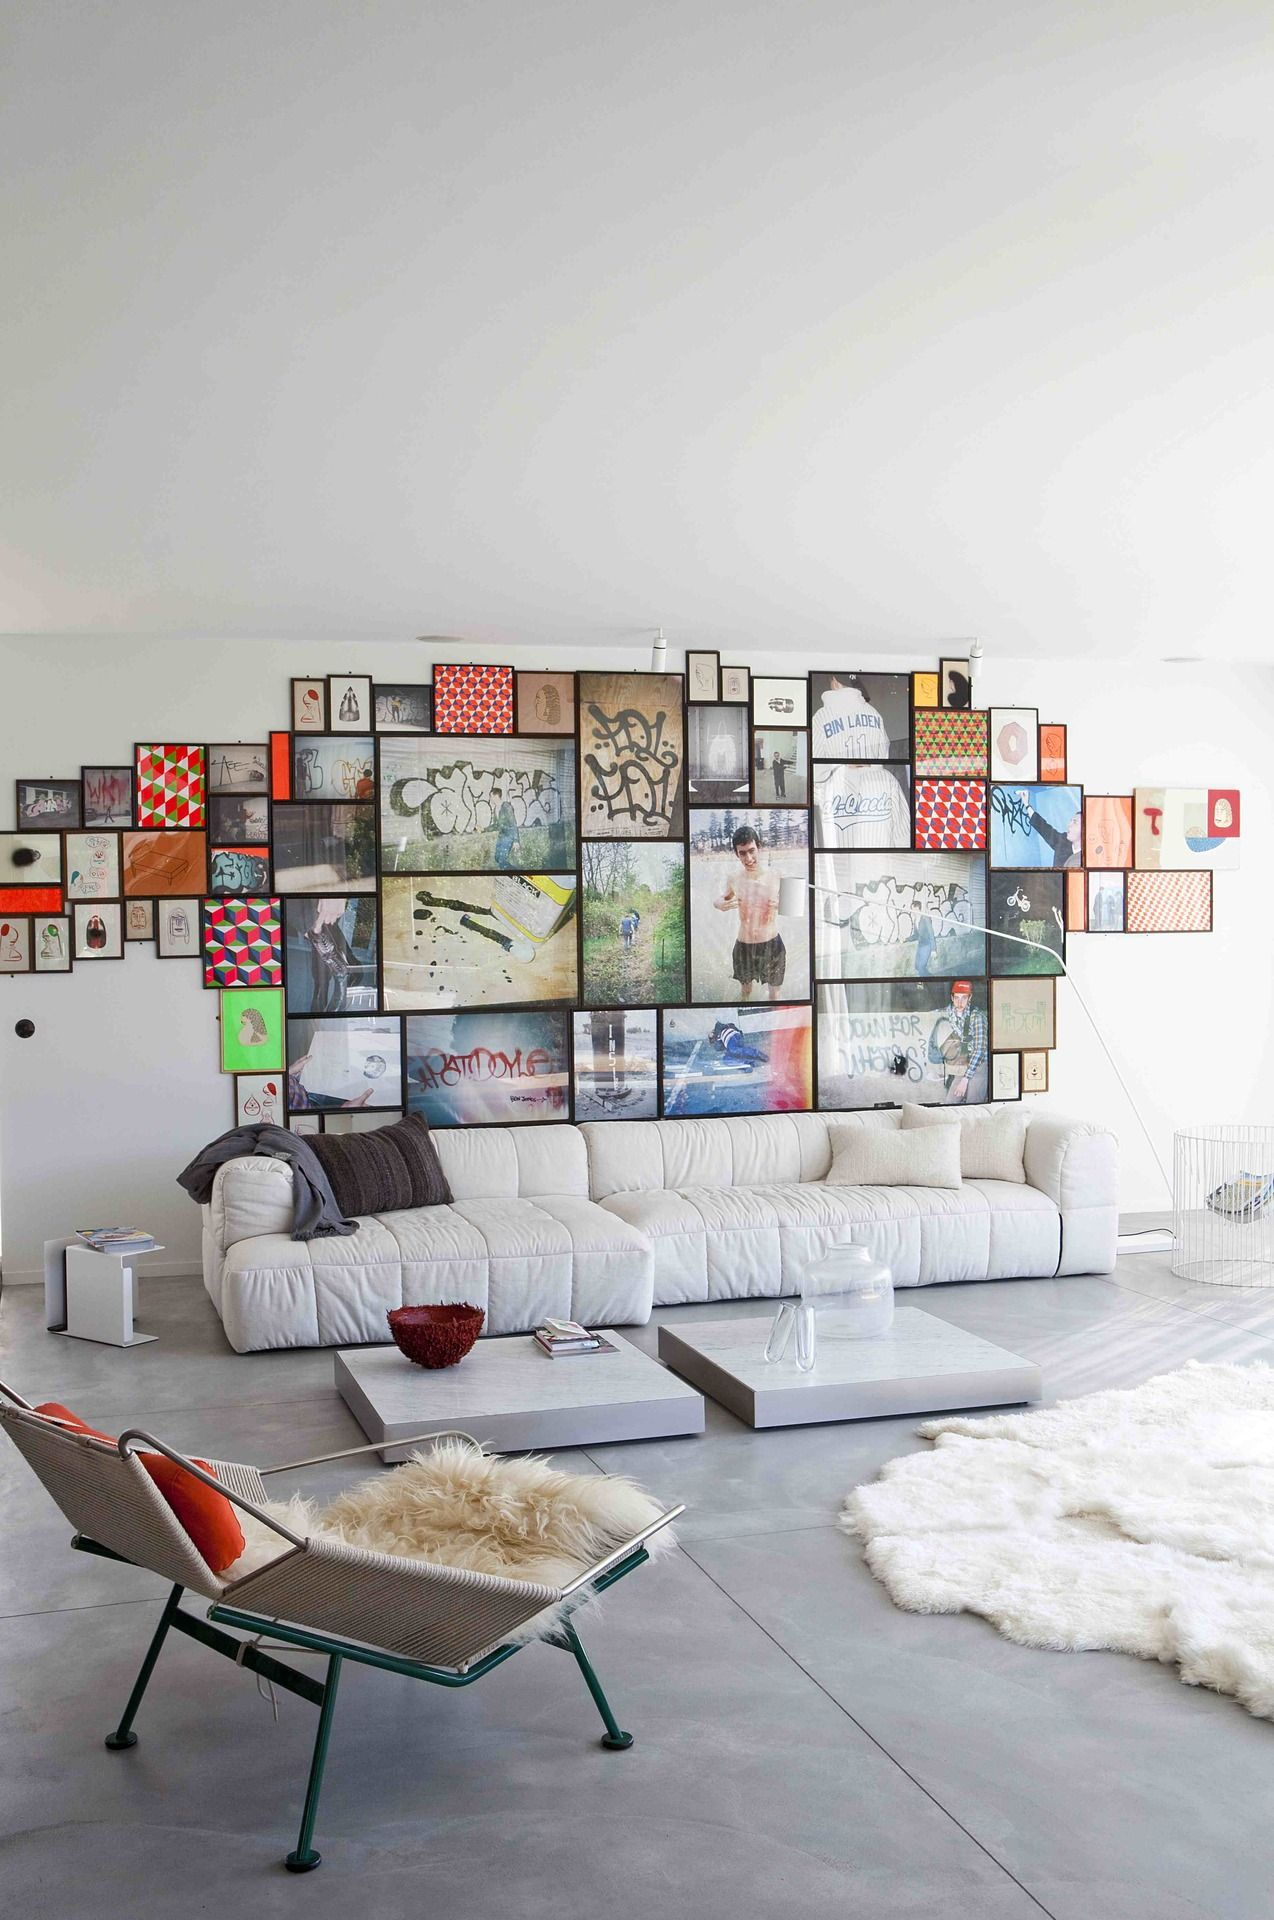 Pictures eclectic framed multicolor design creating cheerful